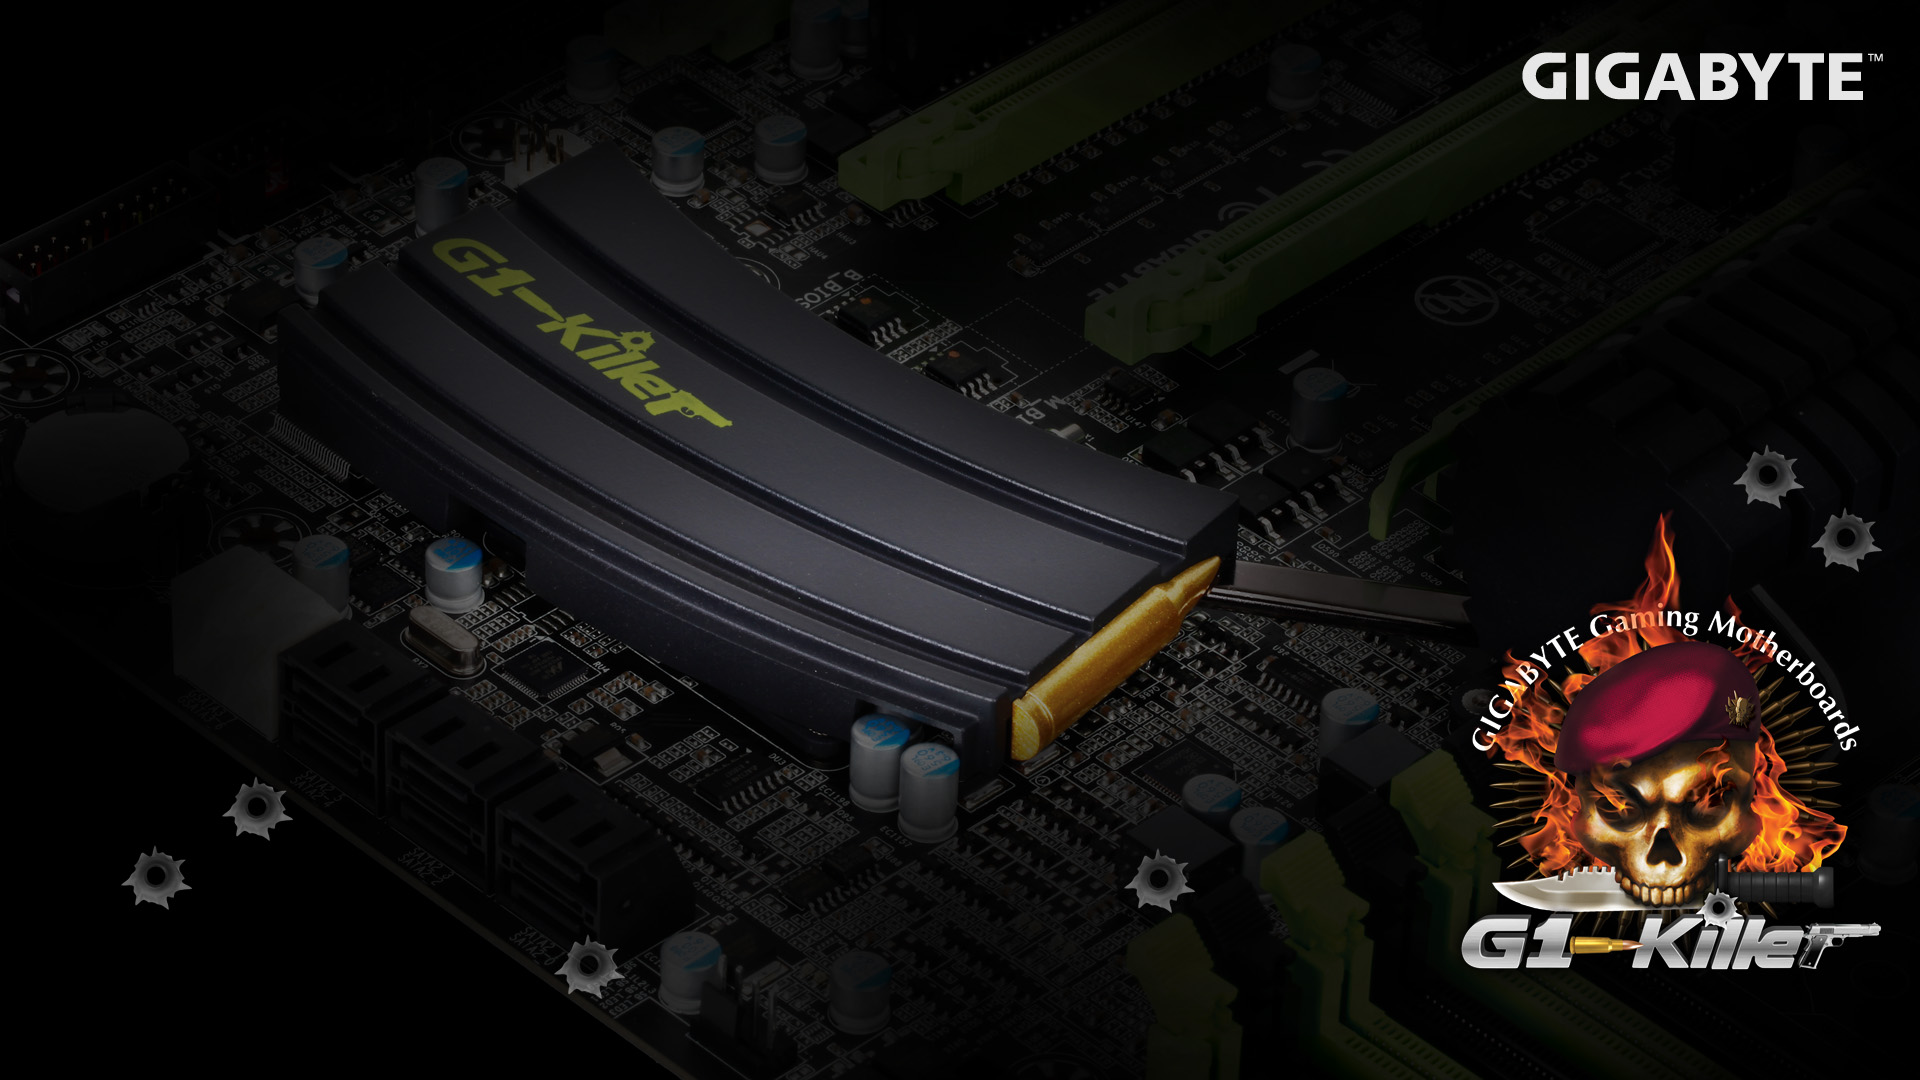 gigabyte motherboards computer wallpapers - photo #21